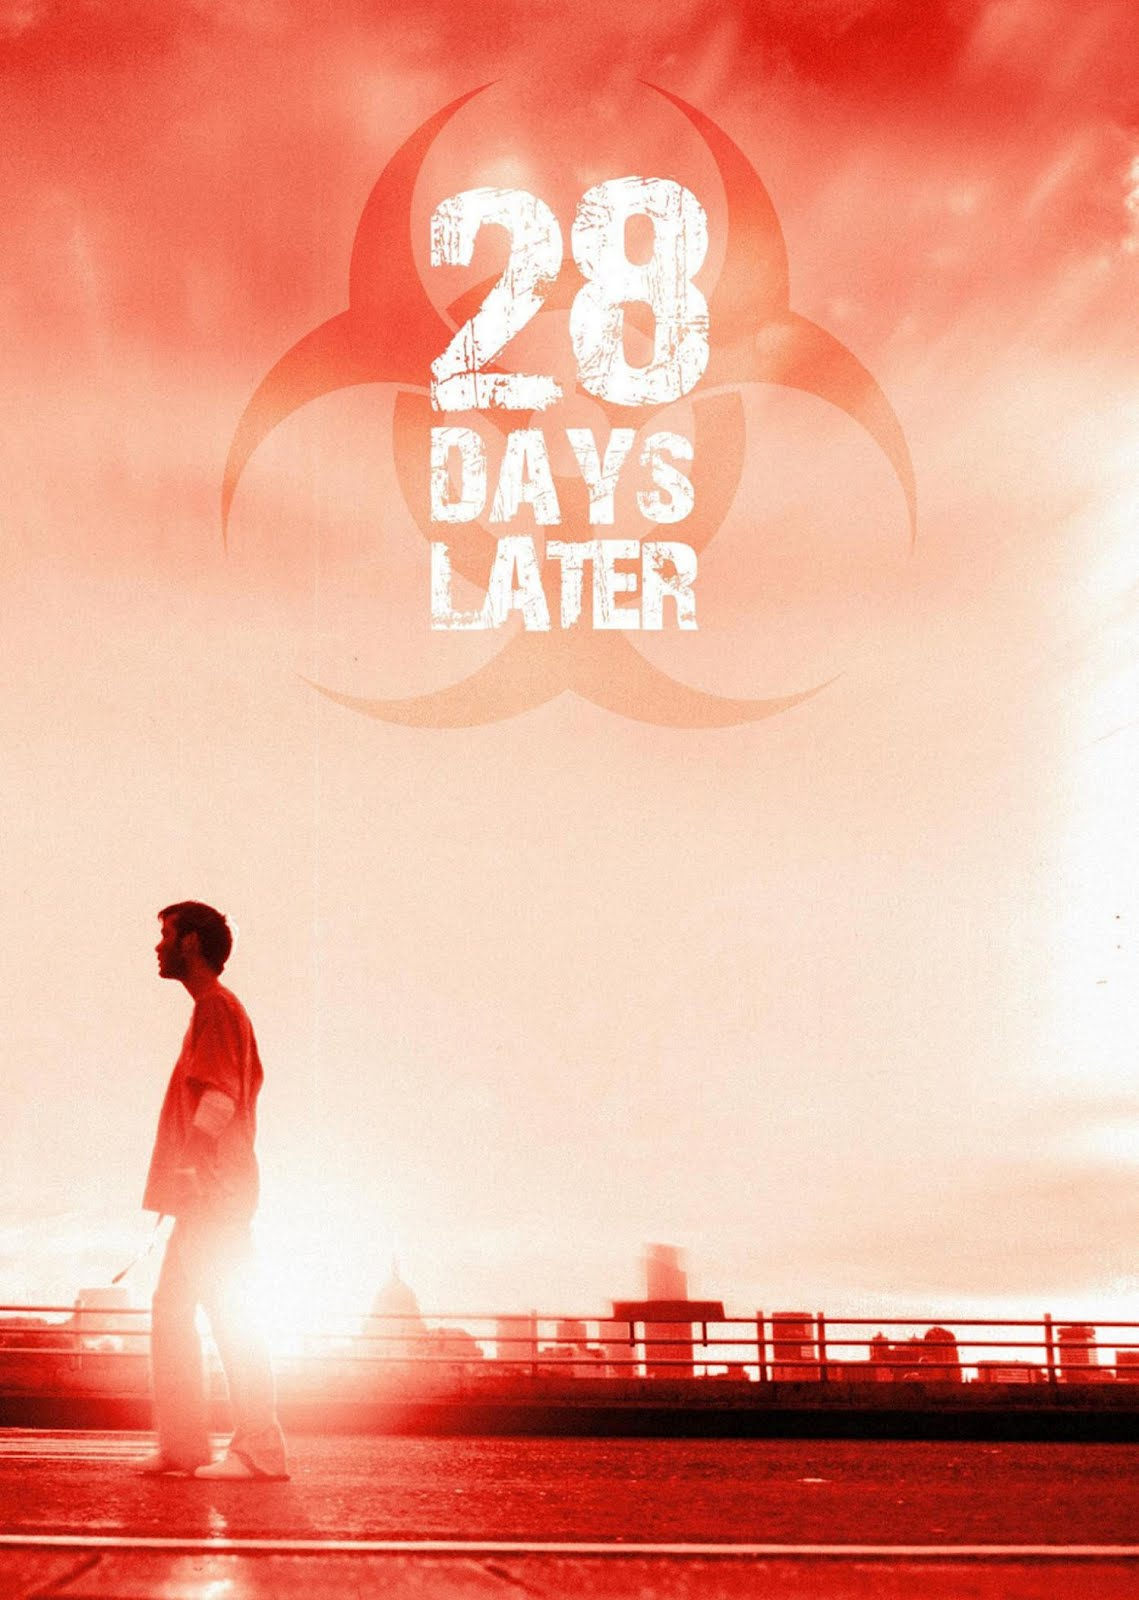 28-days-later-movie-poster